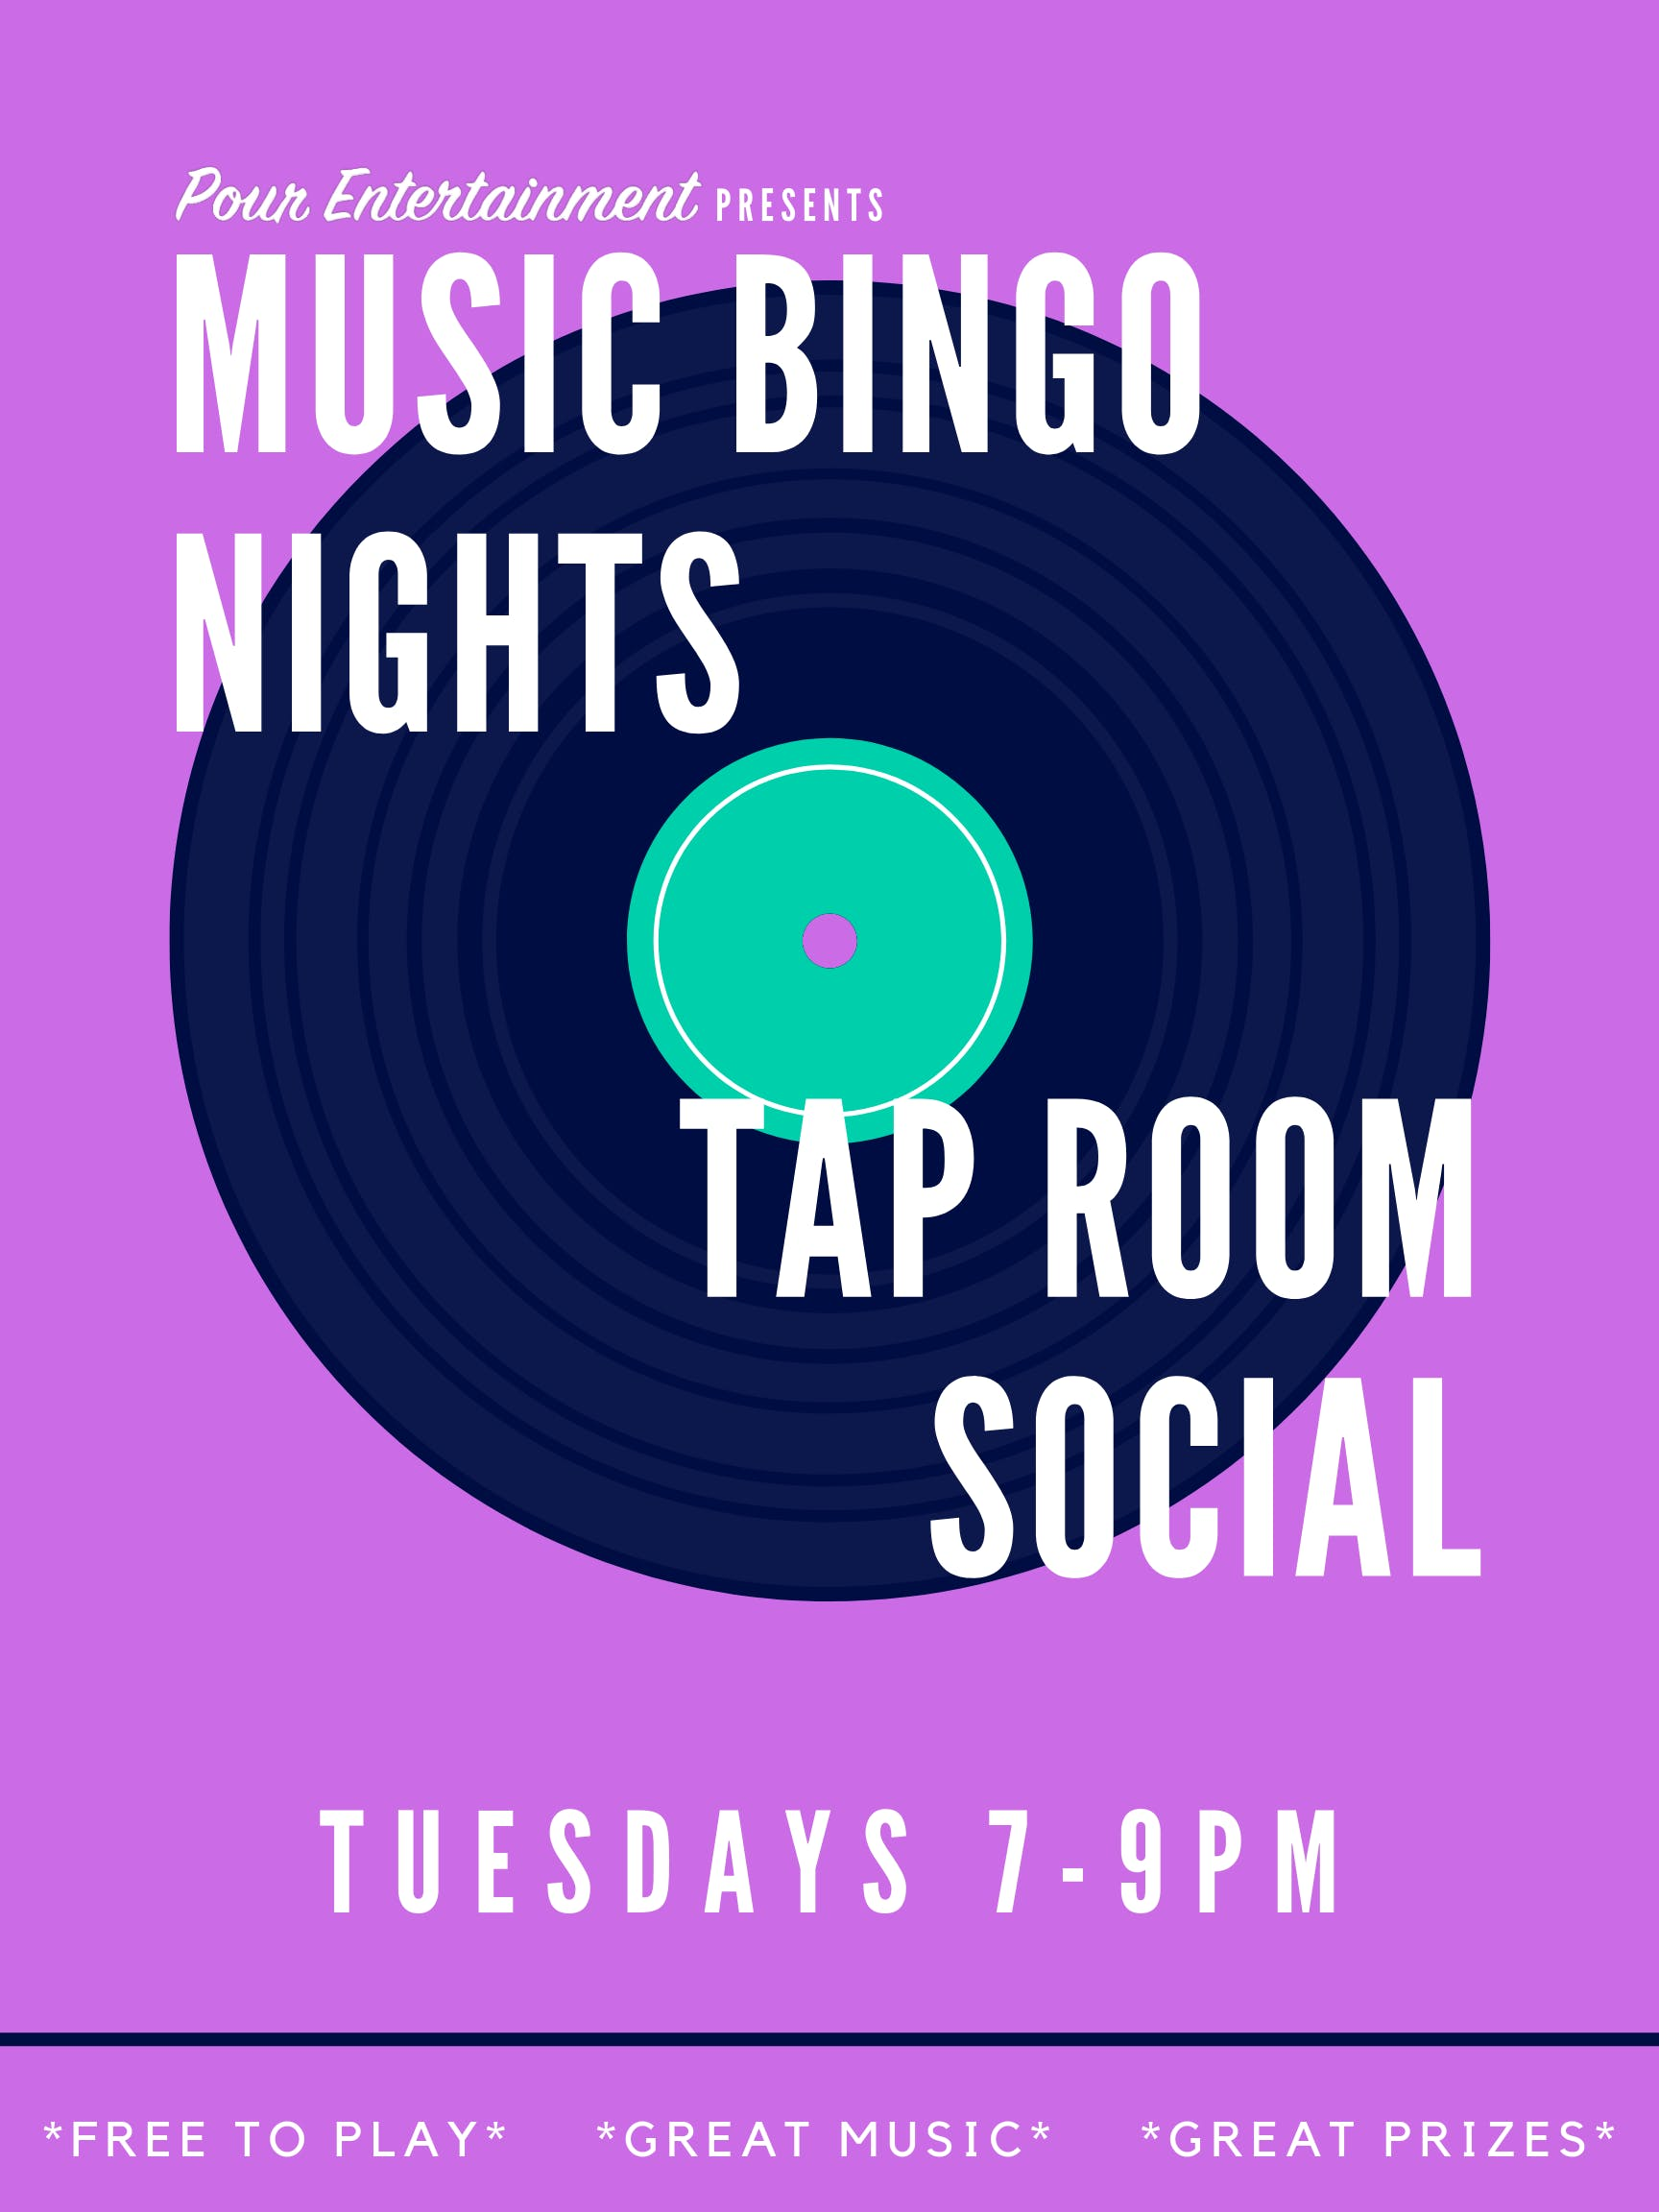 MUSIC BINGO! at TAPROOM SOCIAL